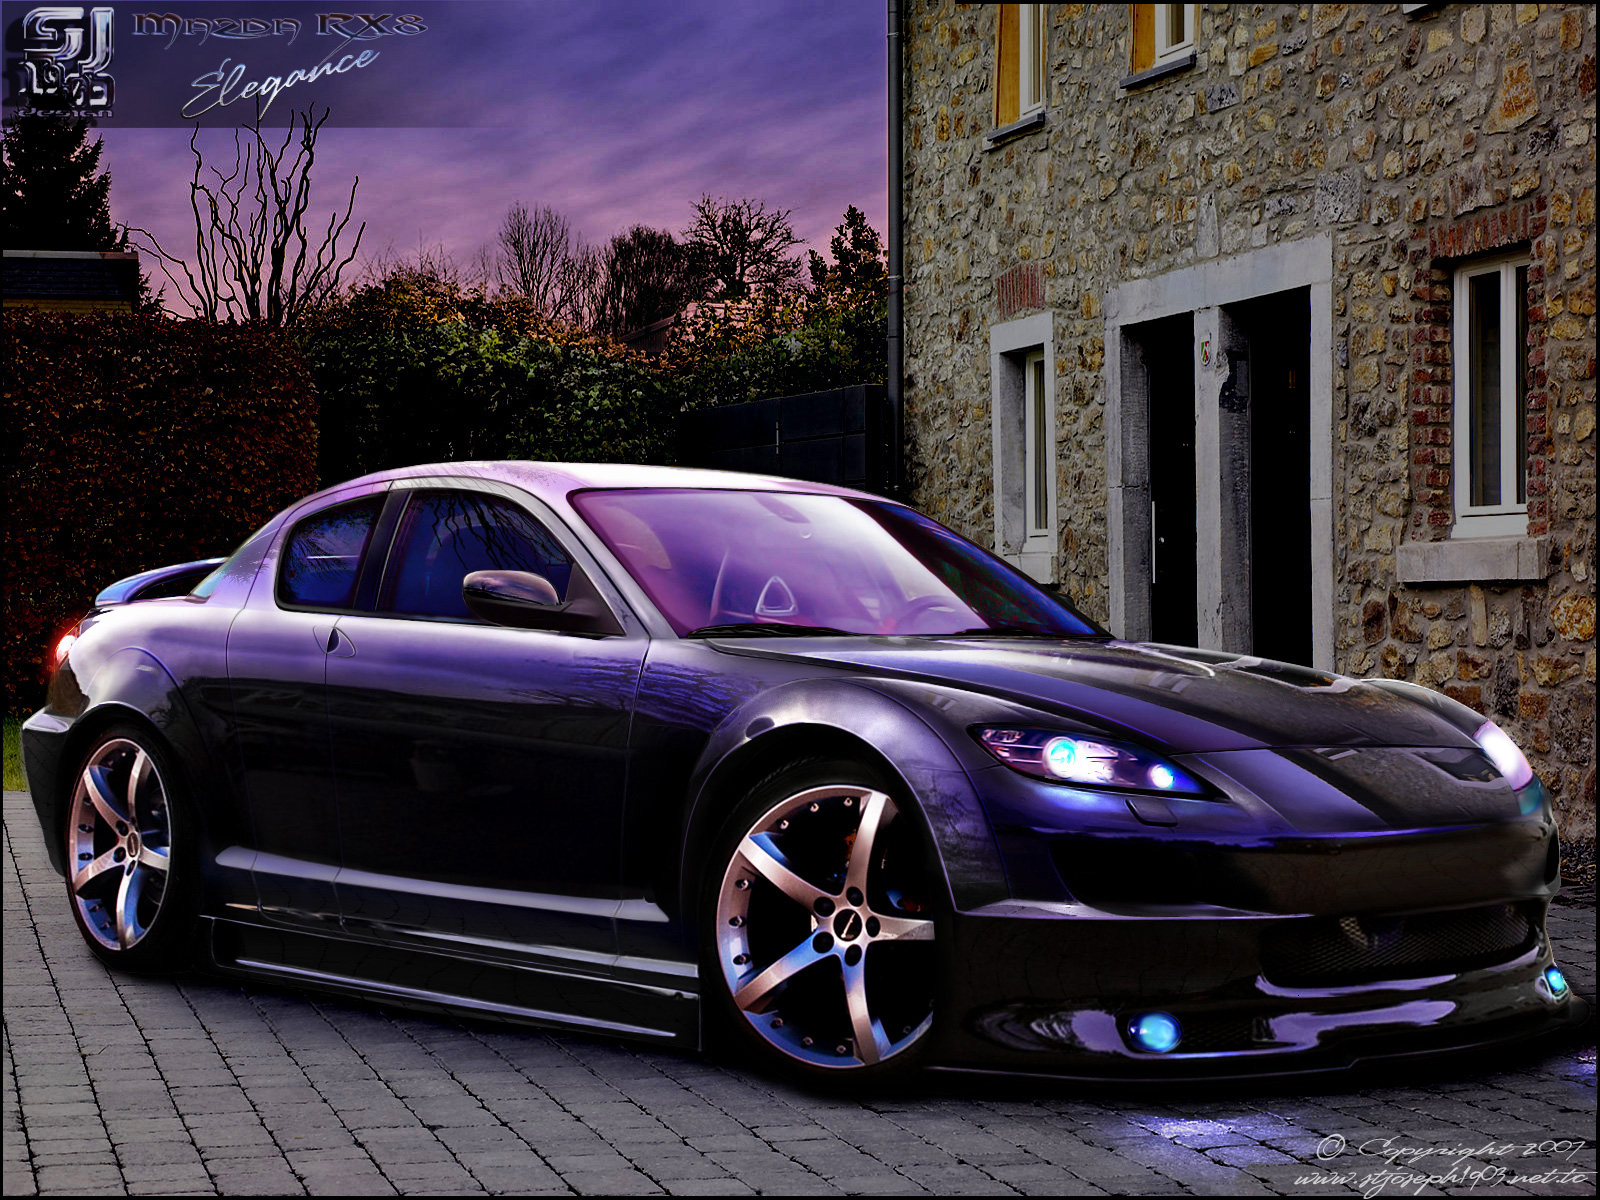 mazda rx8 39 elegance 39 by stjoseph1903 on deviantart. Black Bedroom Furniture Sets. Home Design Ideas